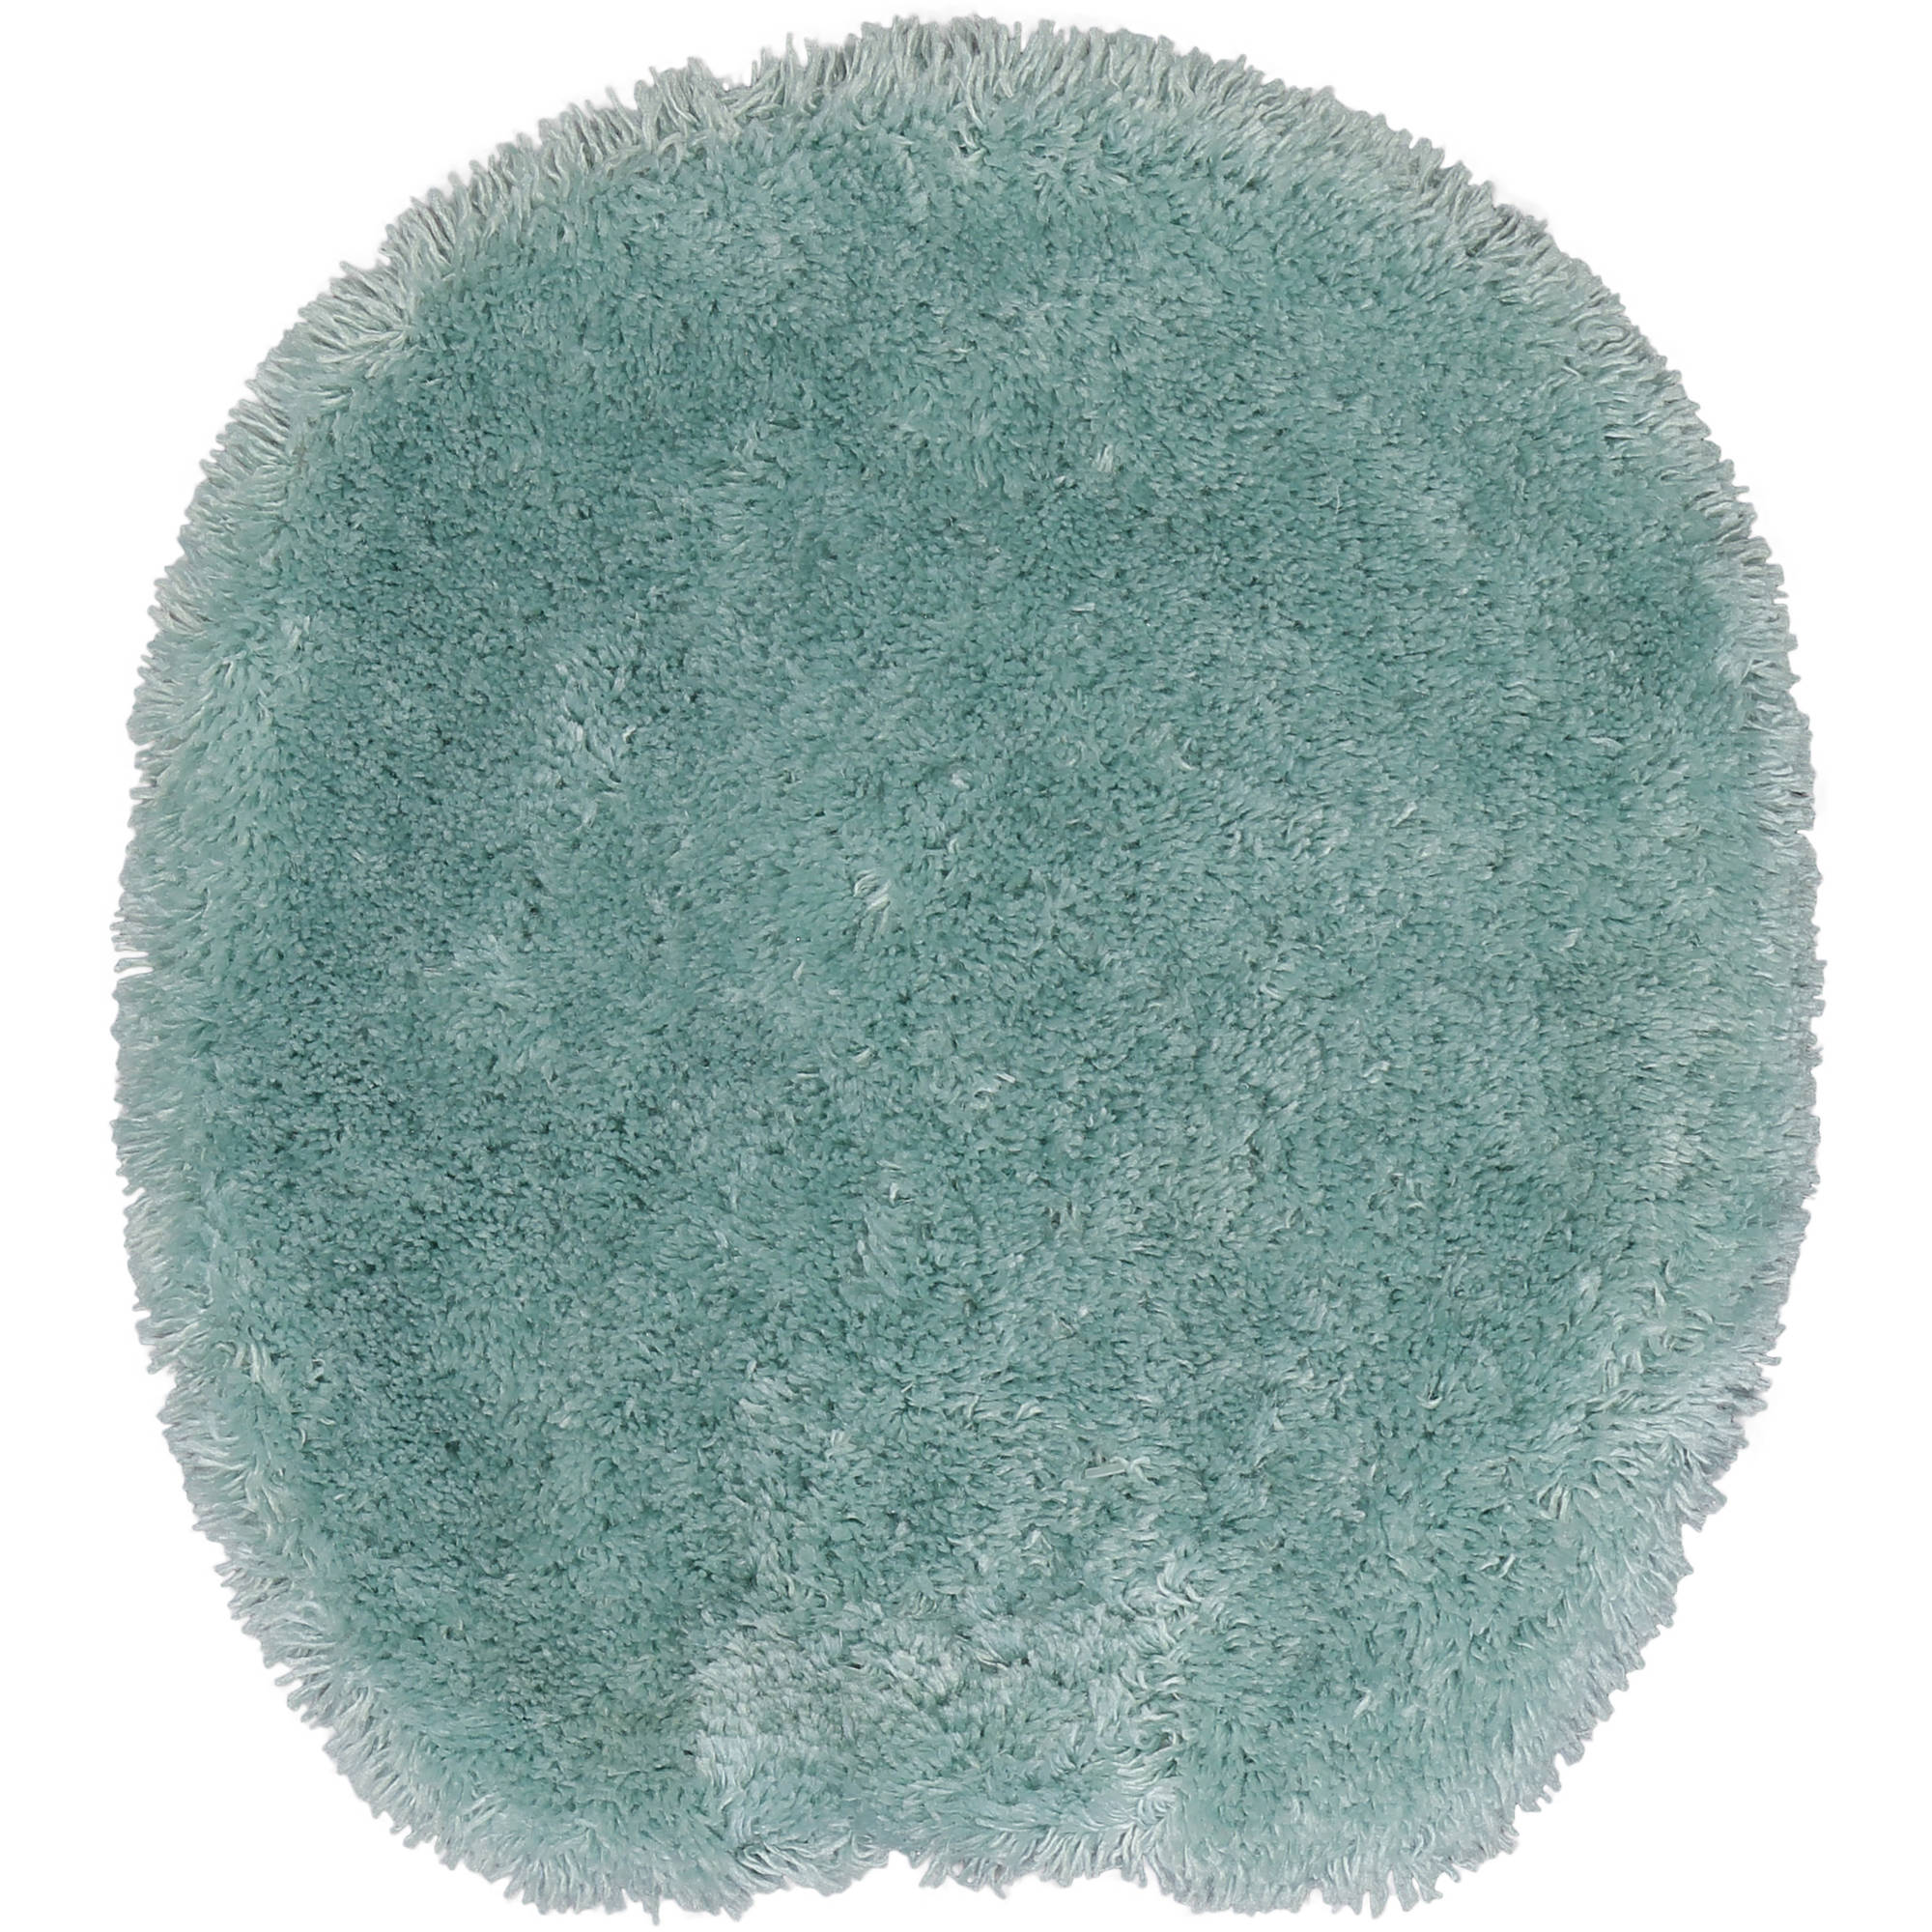 Better Homes and Gardens Thick and Plush Bath Collection, U Lid